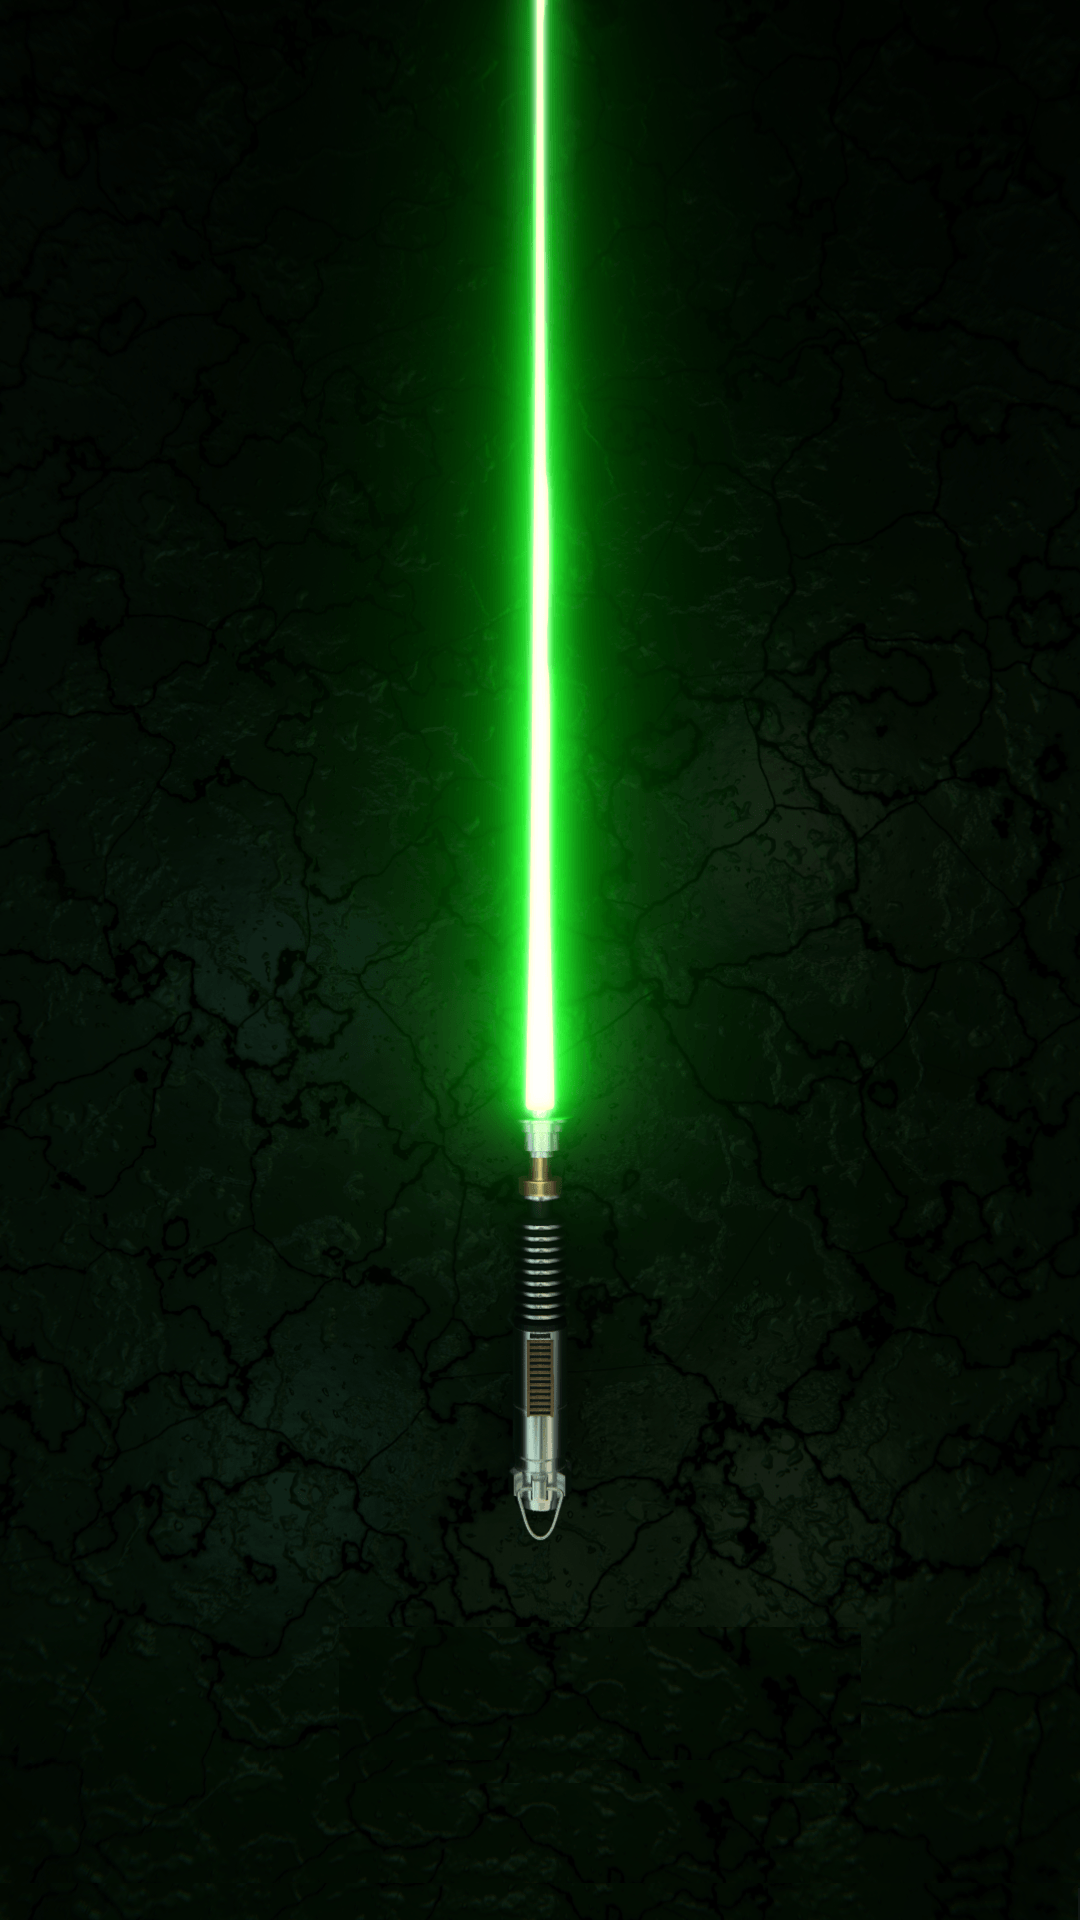 Star Wars Cell Phone Wallpapers Top Free Star Wars Cell Phone Backgrounds Wallpaperaccess